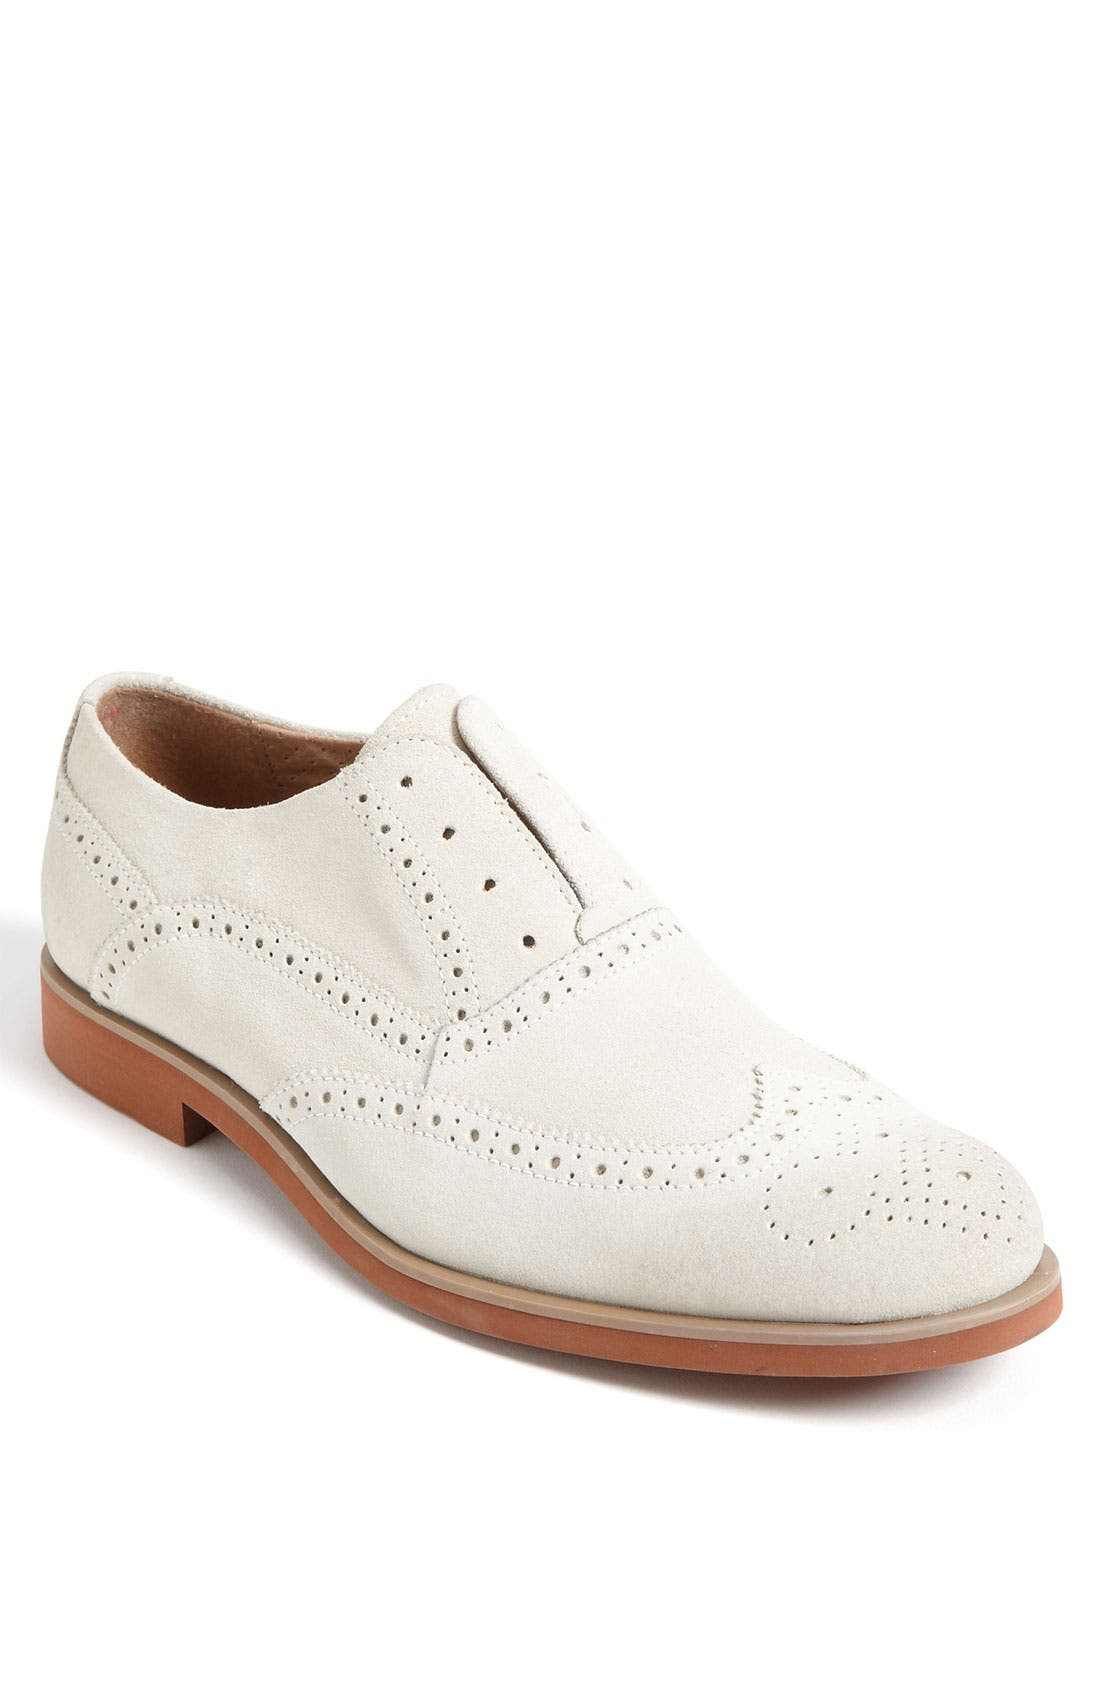 Alternate Image 1 Selected - Florsheim 'No String' Wingtip Oxford